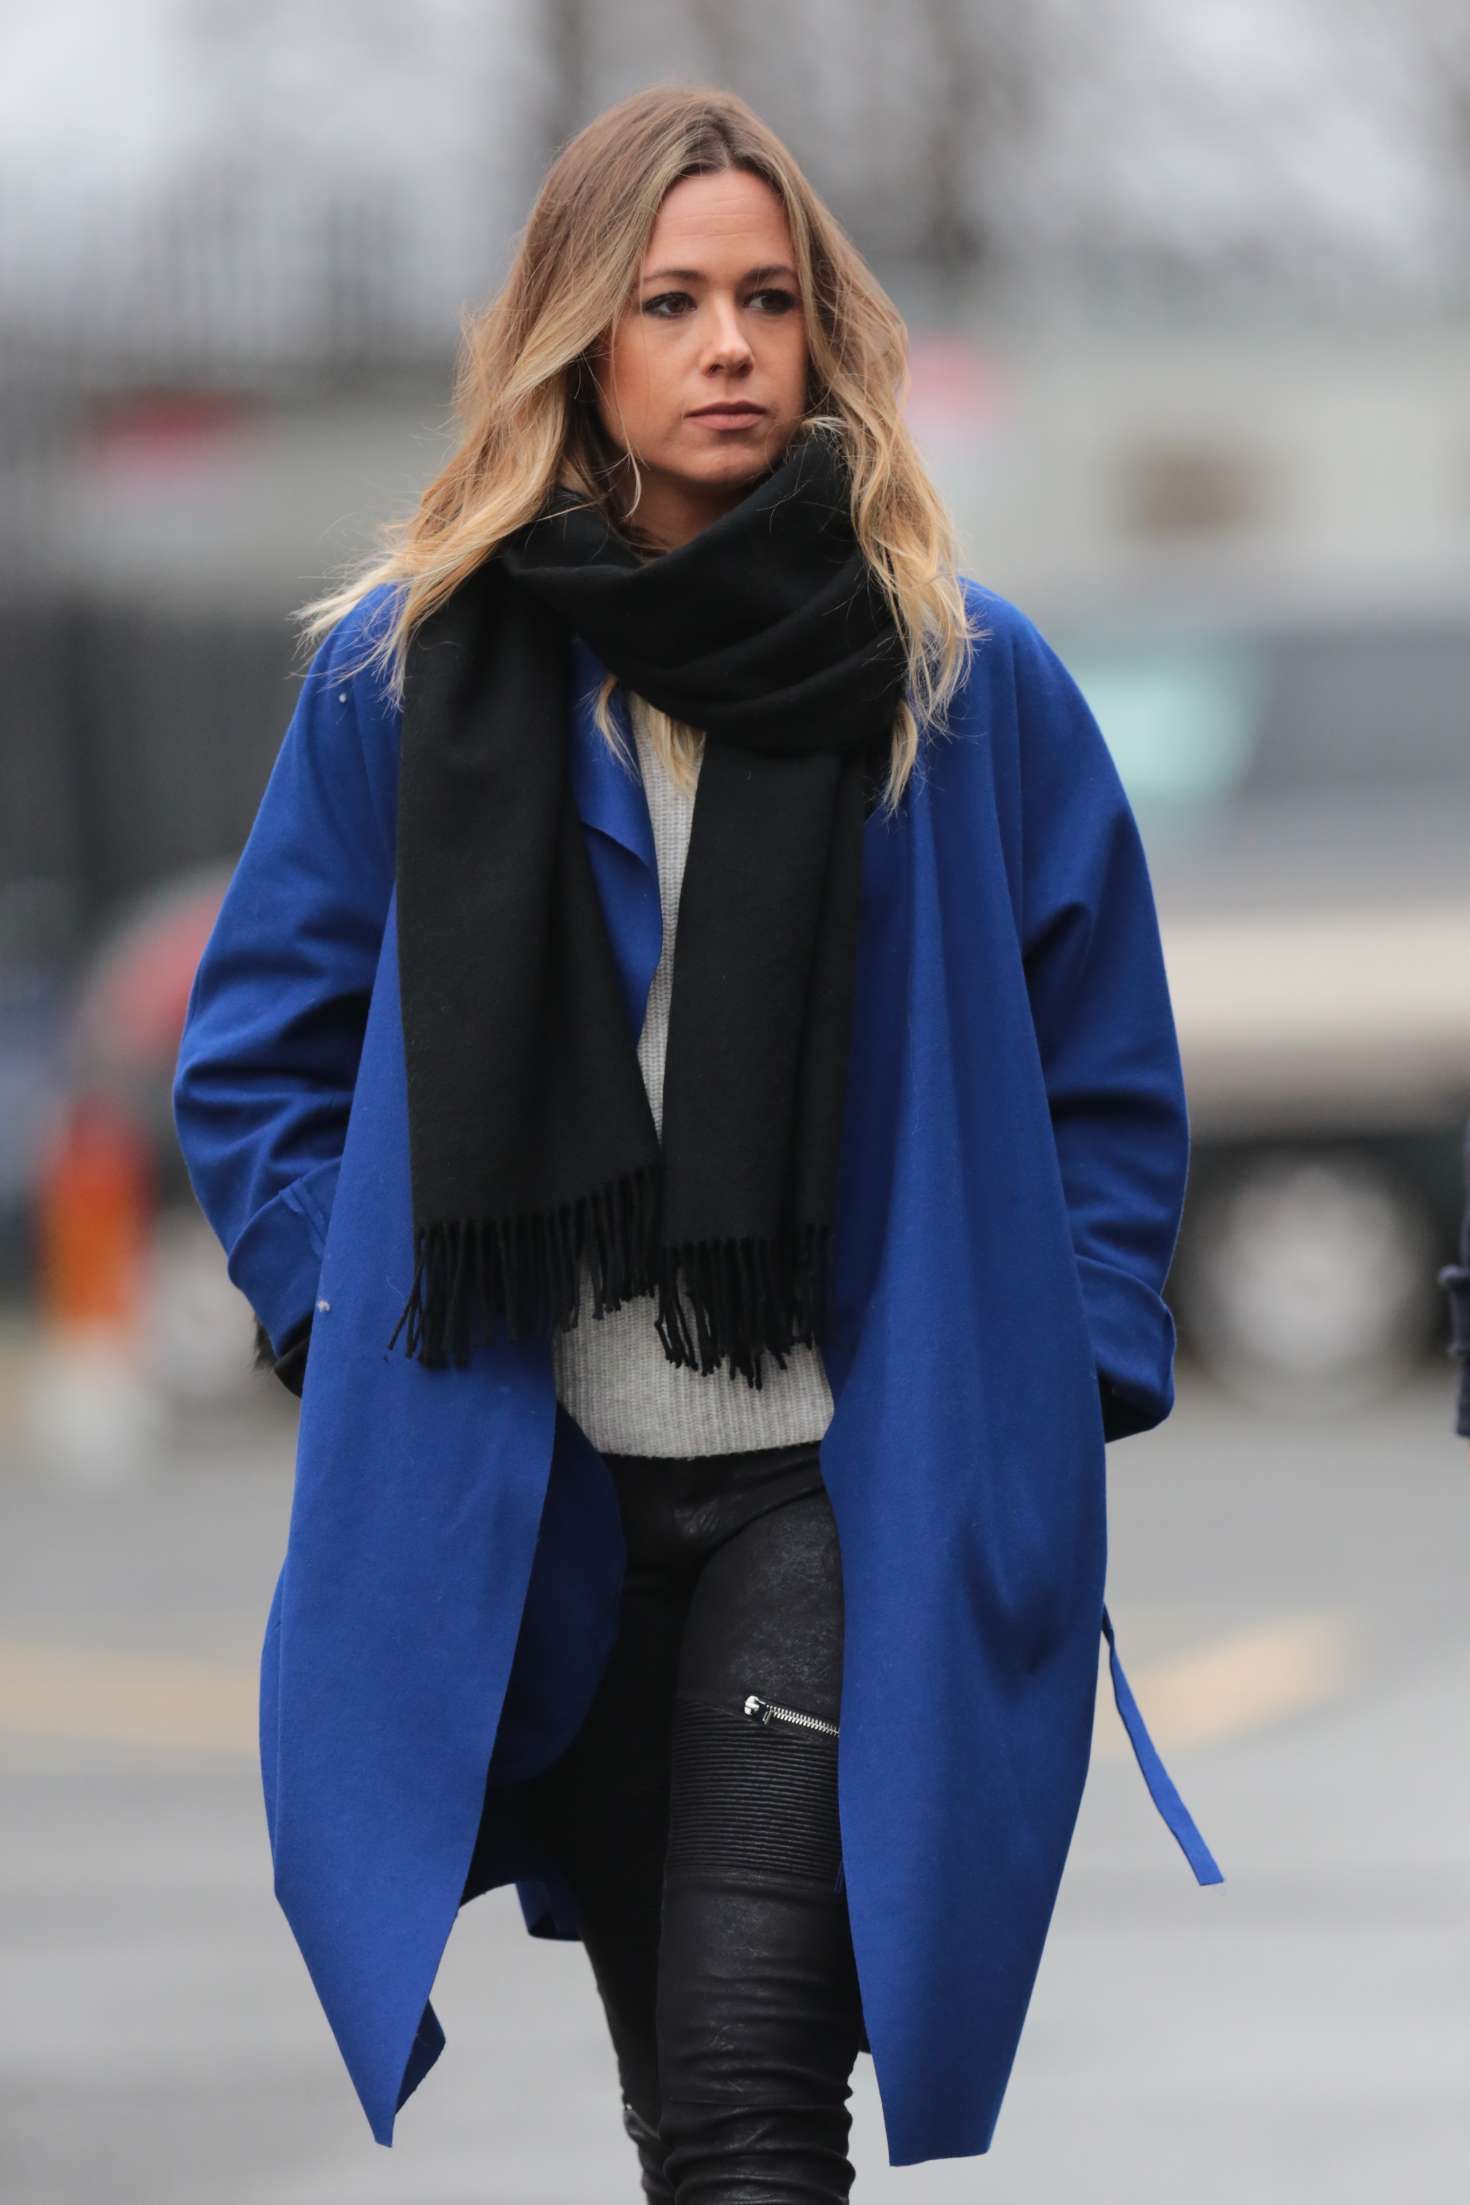 Evelina Kamph - Arrives at Old Trafford in Manchester